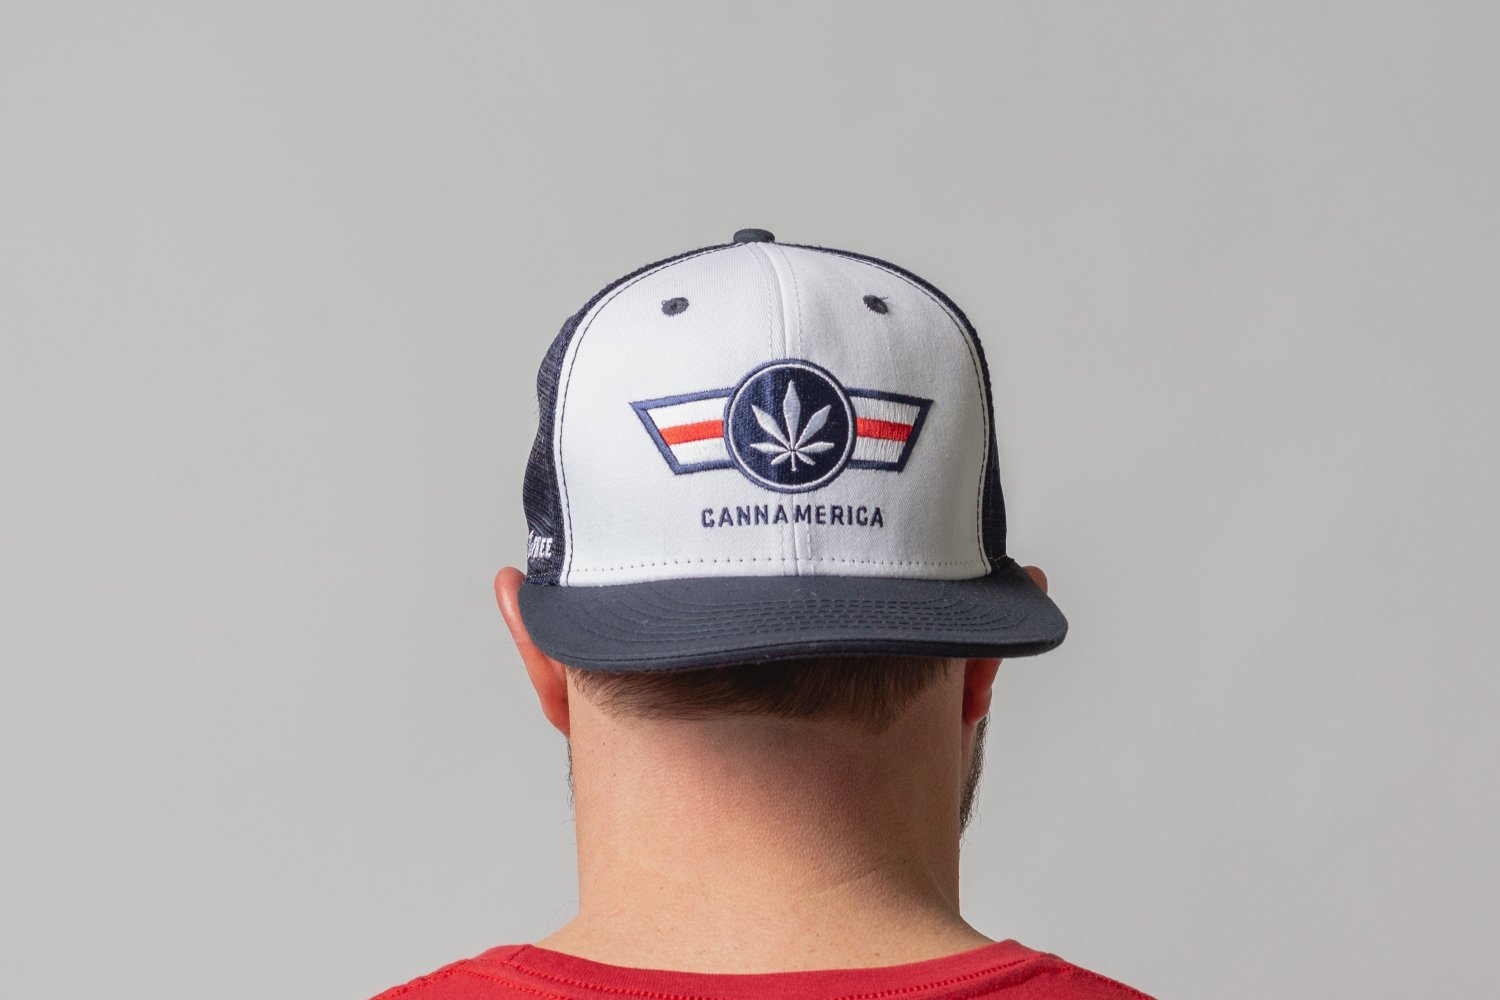 As CEO, CannAmerica's Dan Anglin wants a piece of the hemp and CBD market. As a Marine, he wants veterans to have access to cannabis too.